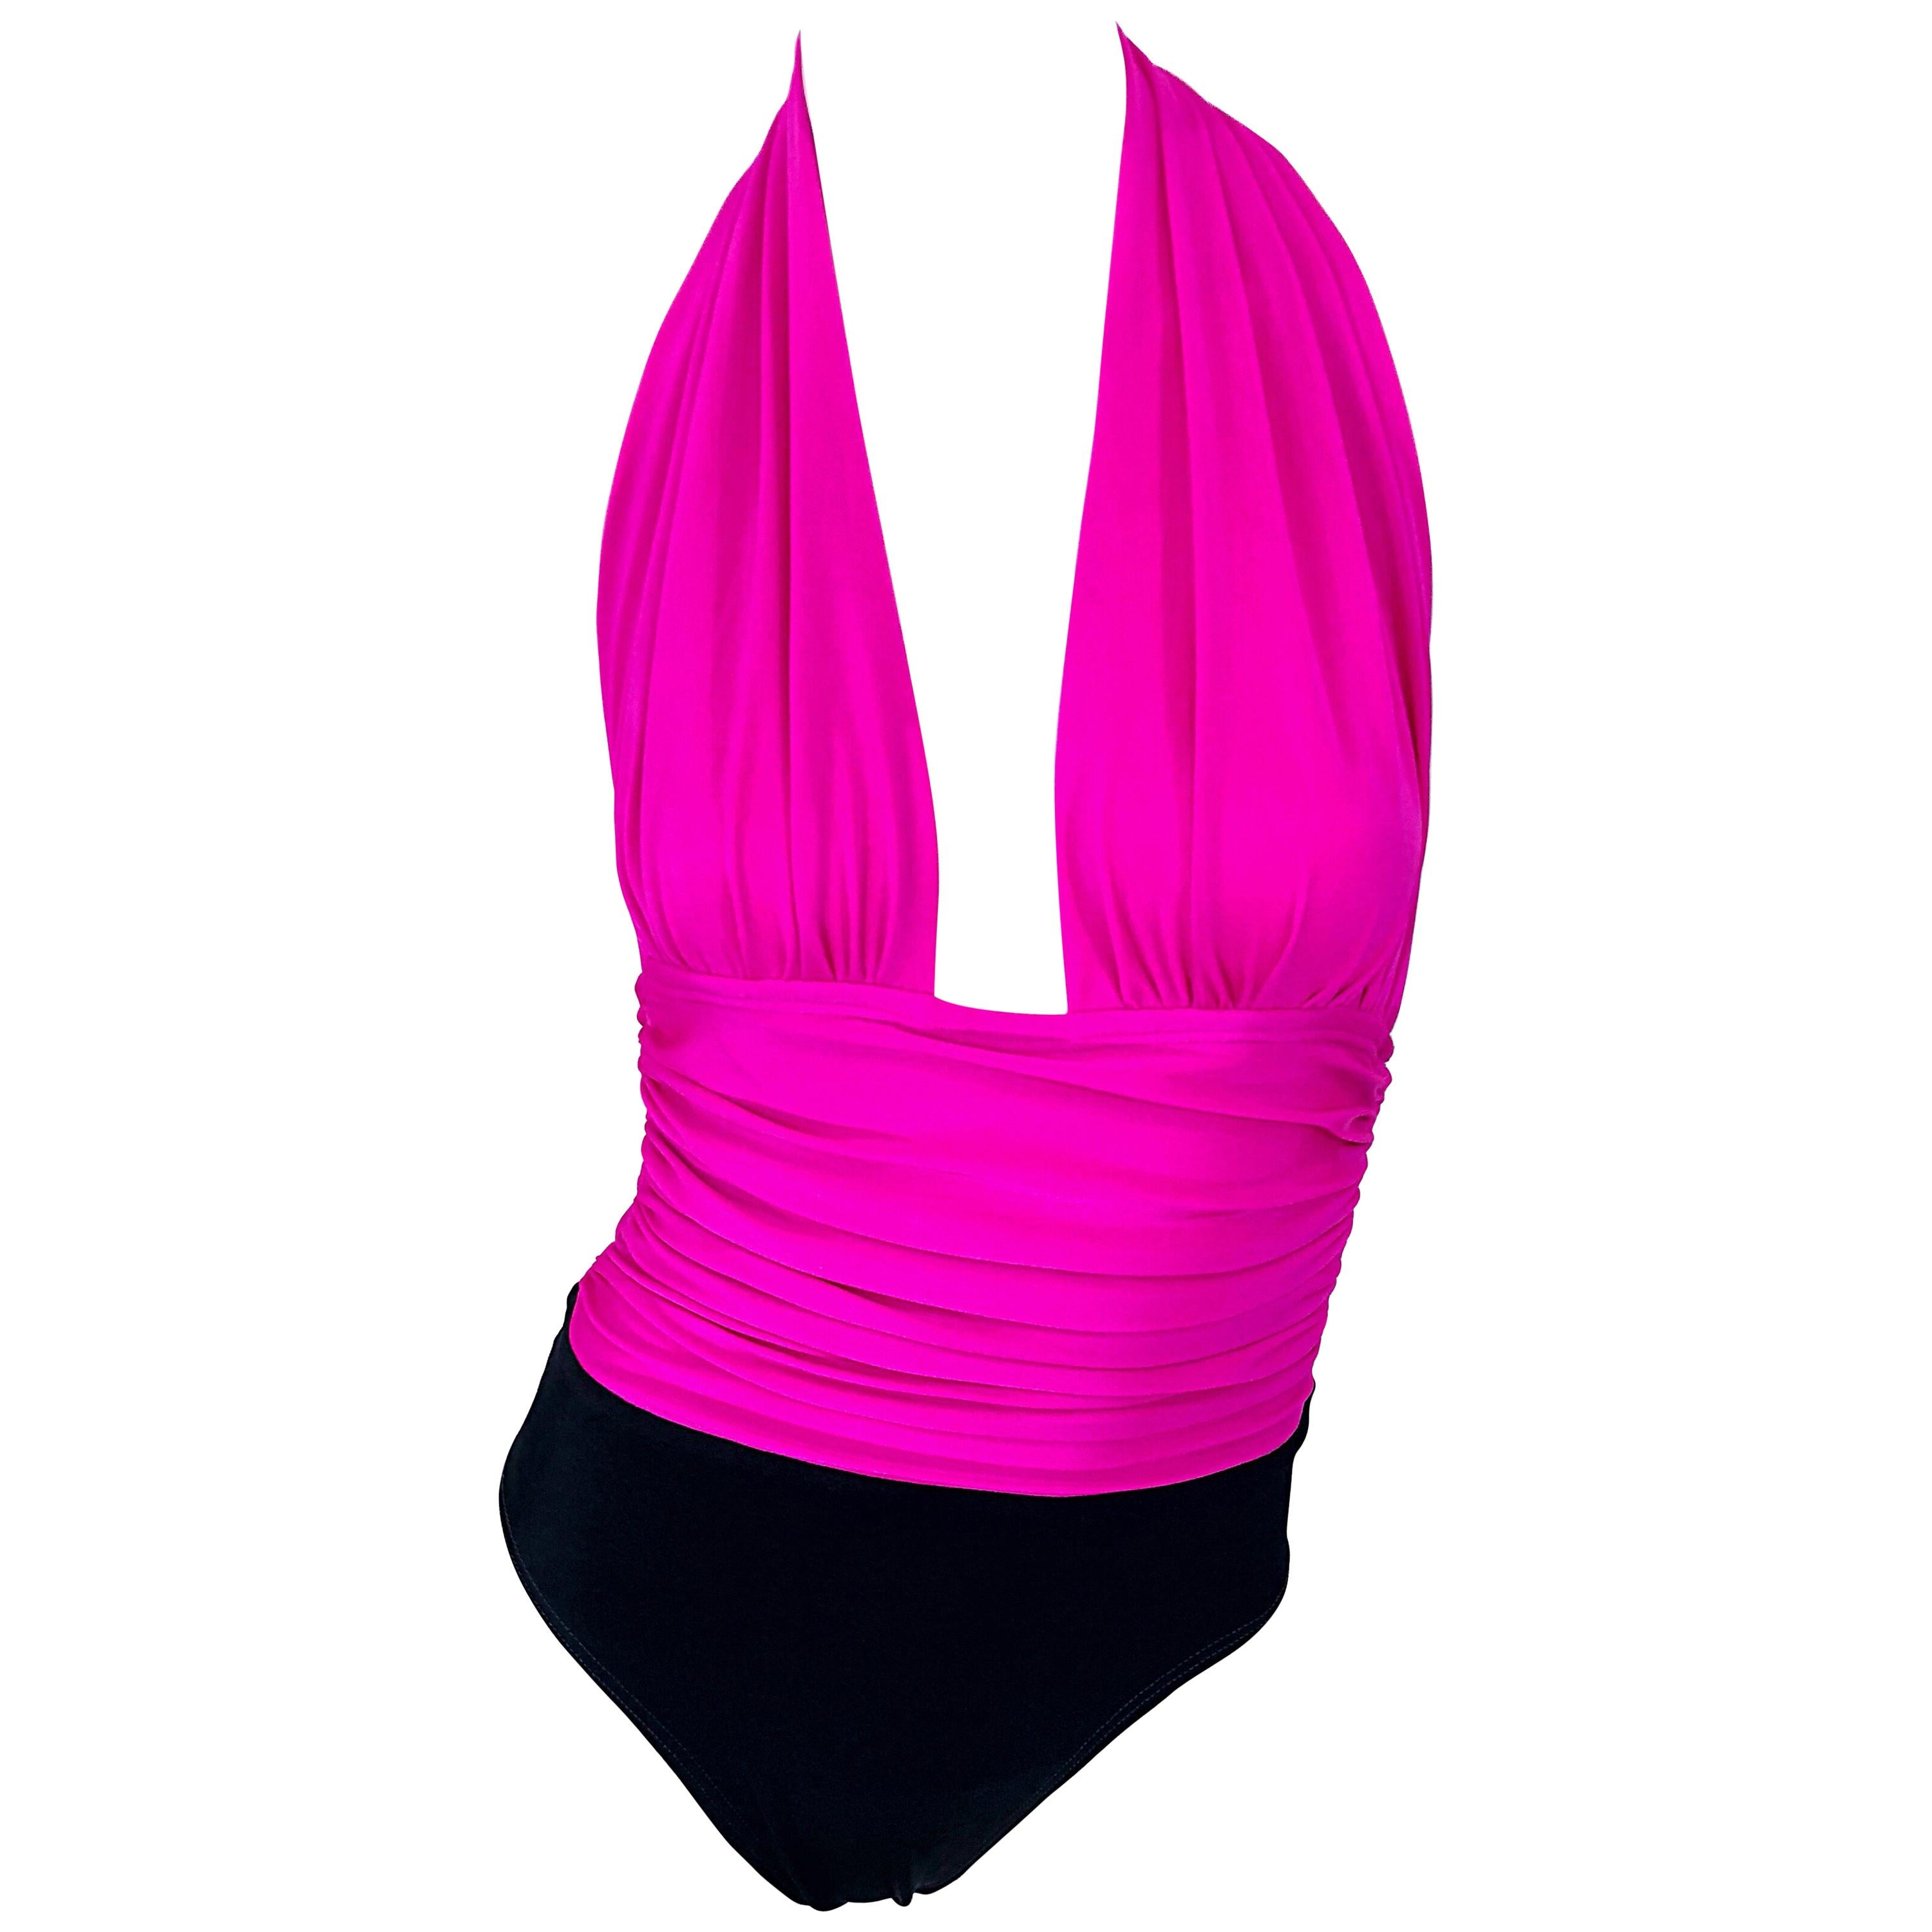 Yves Saint Laurent Size 12 / 14 Vintage Sexy Hot Pink + Black One Piece Swimsuit